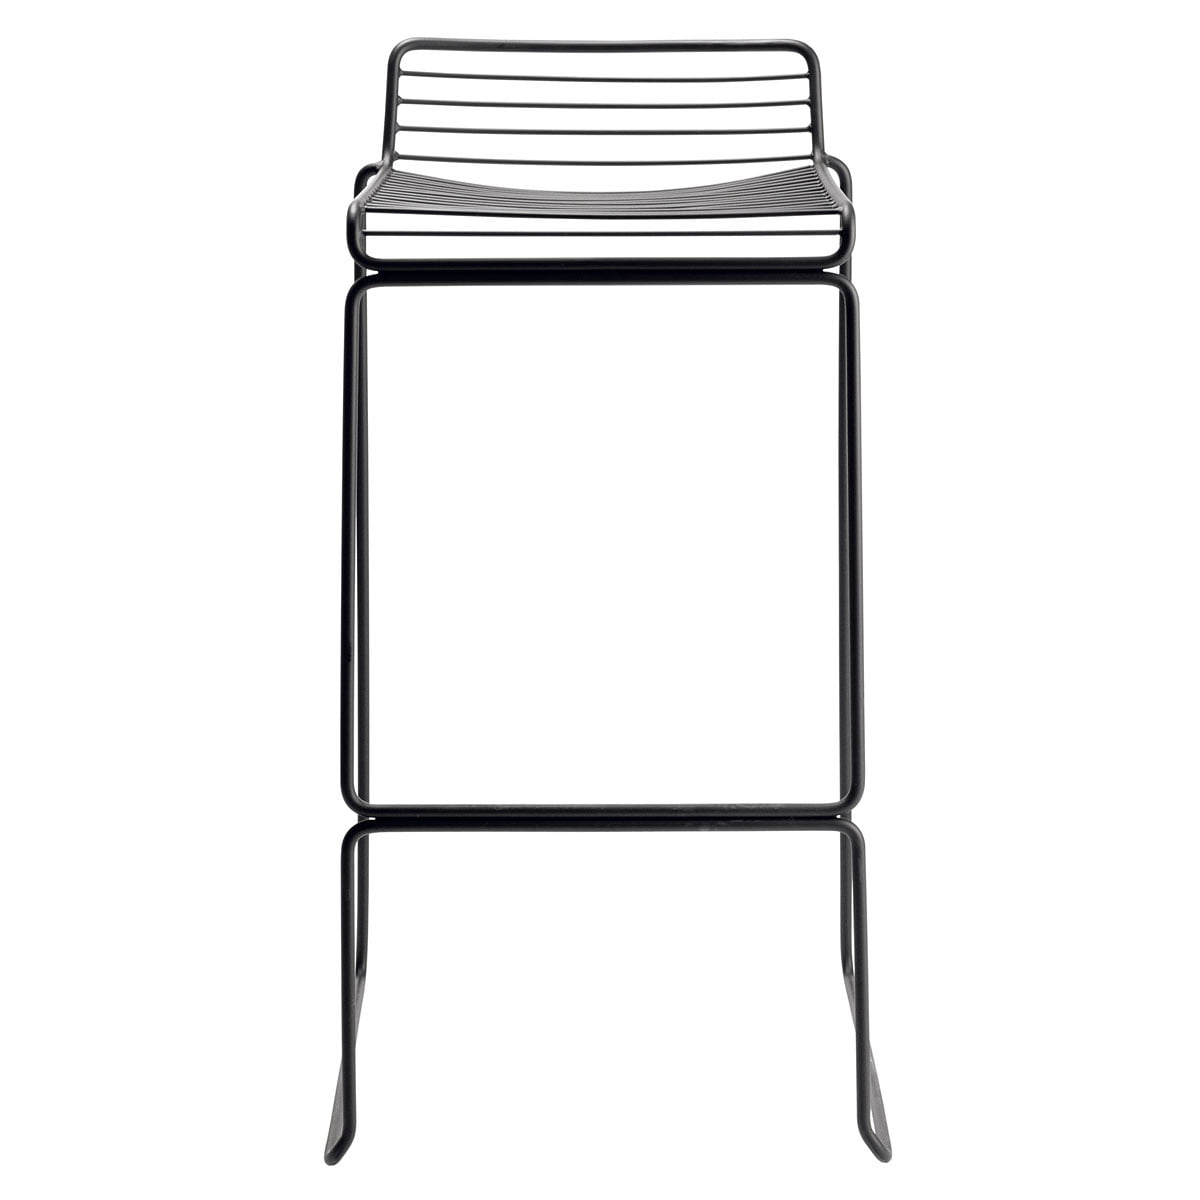 barstol hay Hee Bar Stool by Hay in the shop barstol hay